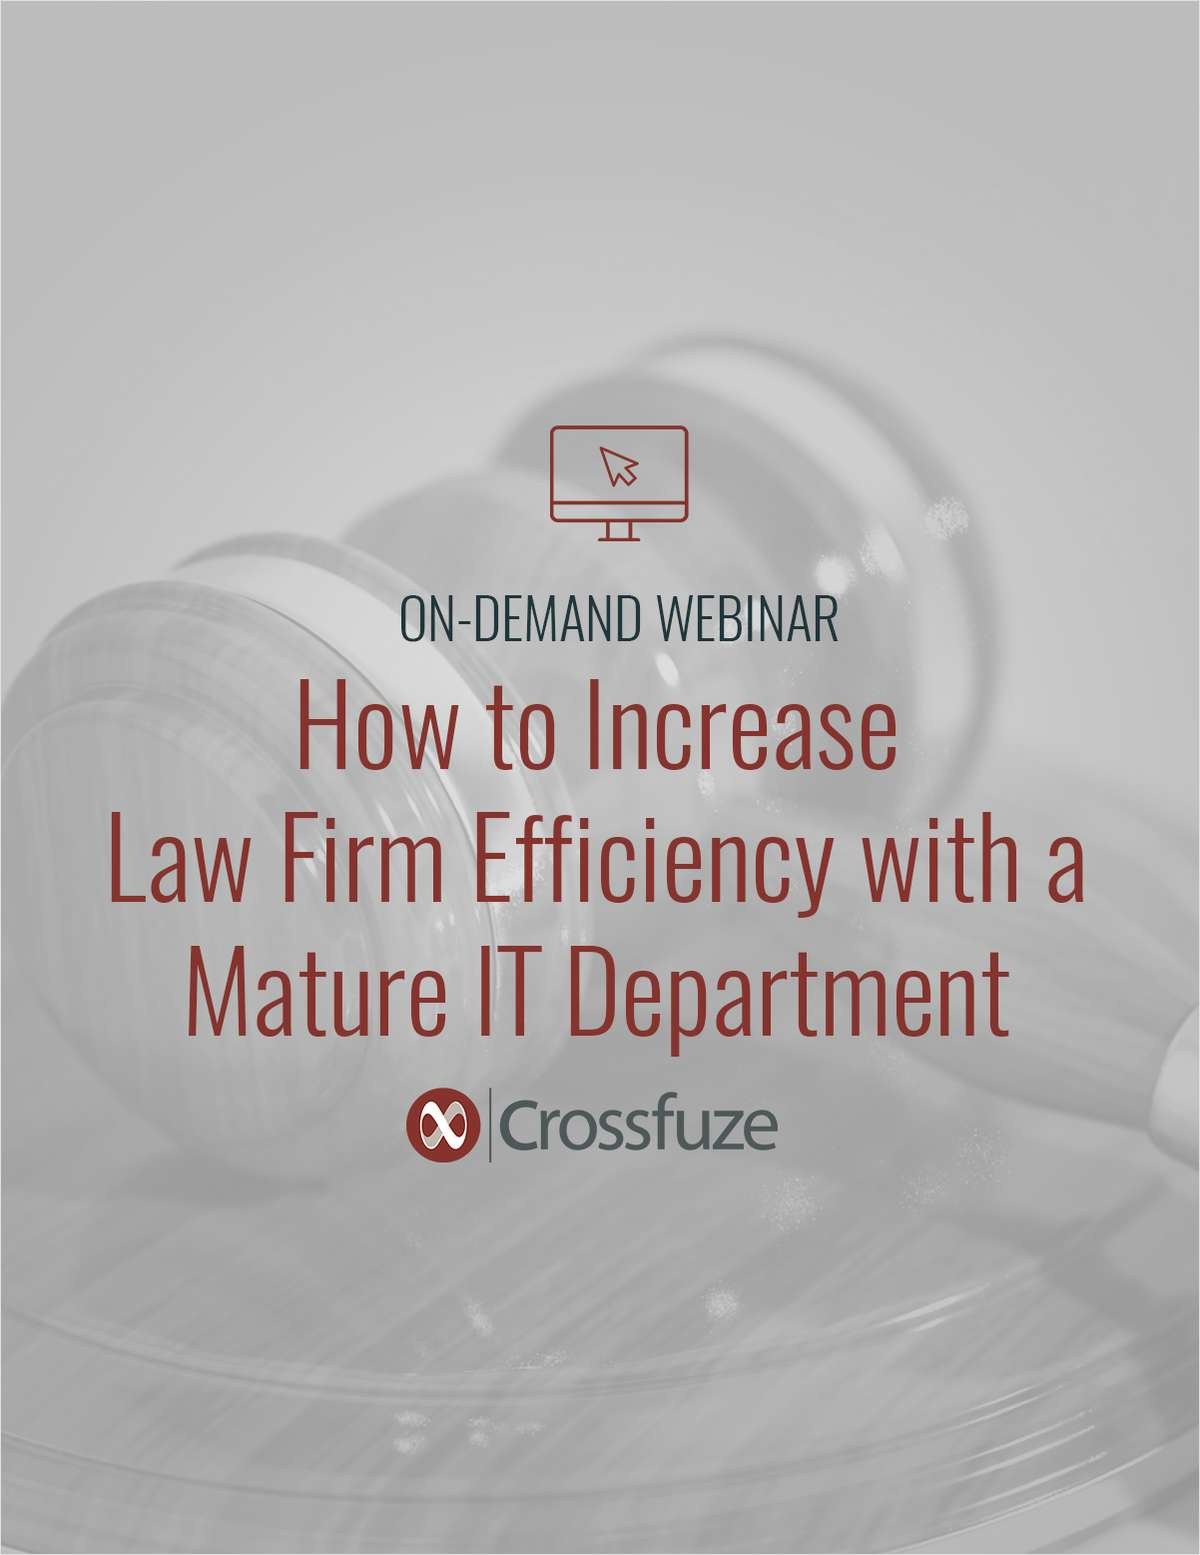 How to Increase Law Firm Efficiency with a Mature IT Department